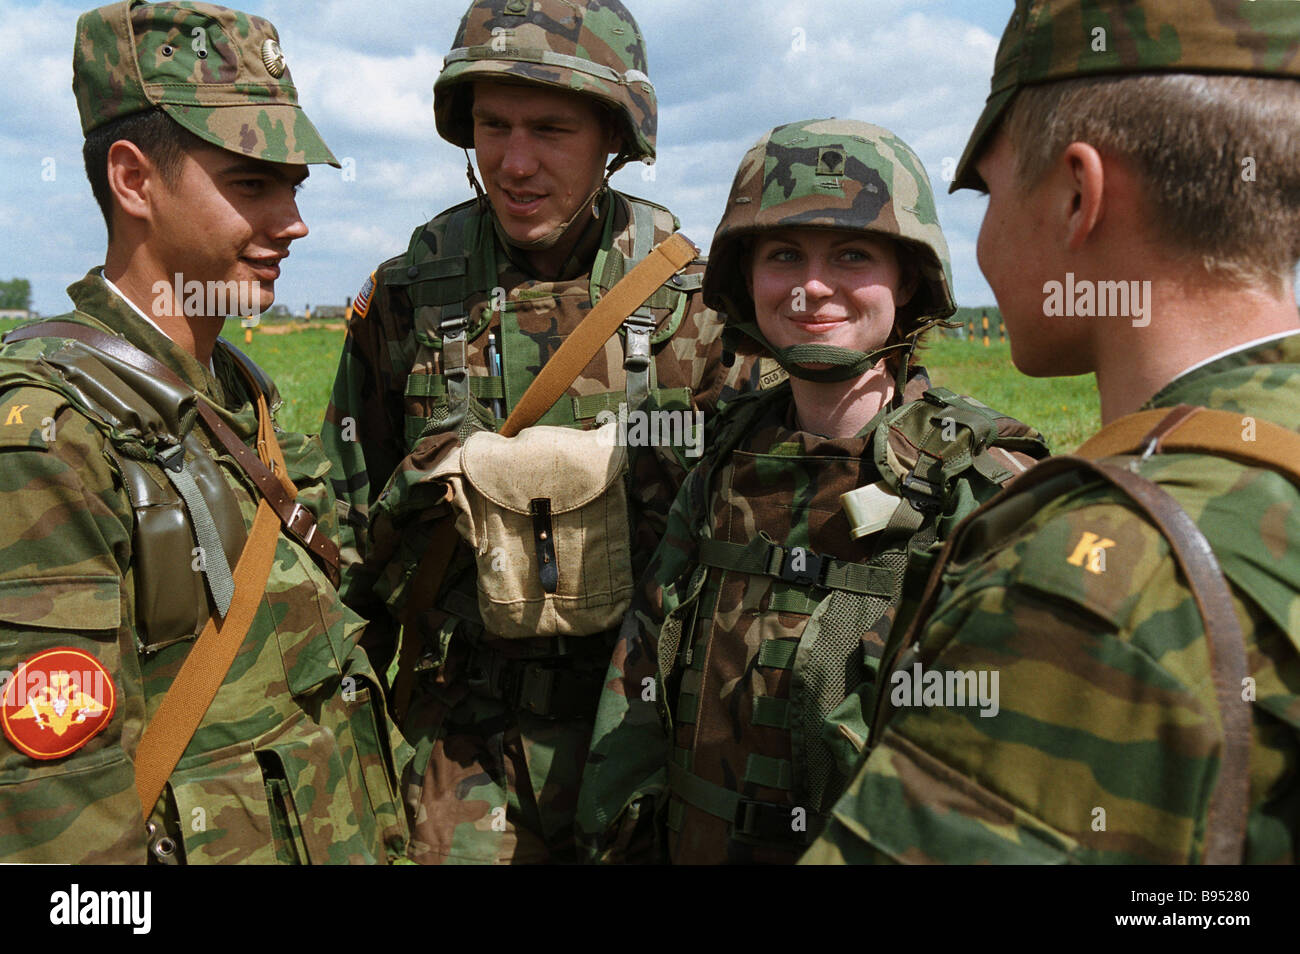 Russian and American servicemen participants in Torgau 2005 dry forces exercise - Stock Image